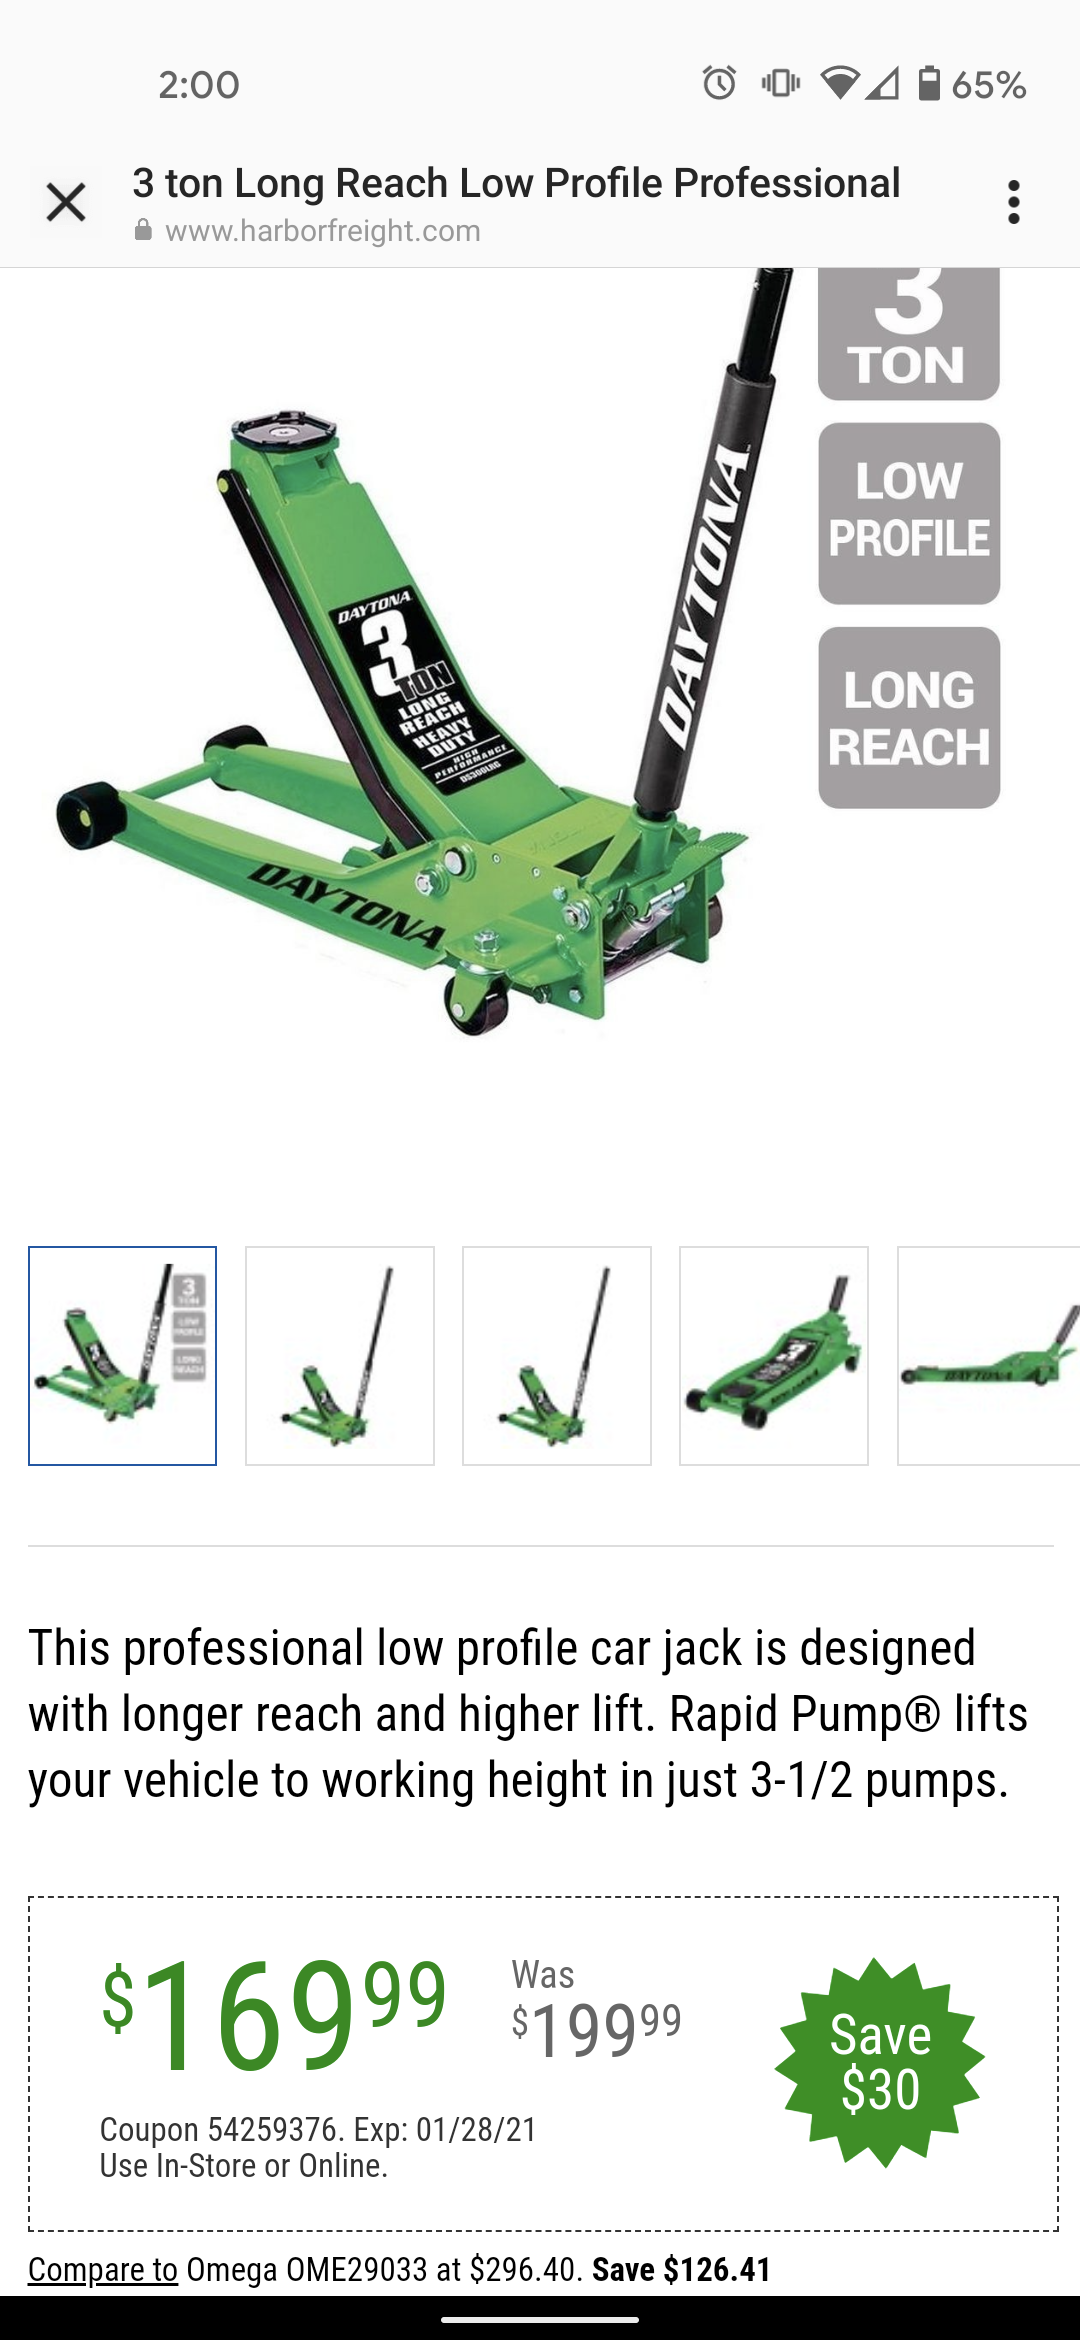 www.hfqpdb.com - 3 TON LONG REACH LOW PROFILE PROFESSIONAL RAPID PUMP FLOOR JACKS Lot No. 64781/64241/56641/64785